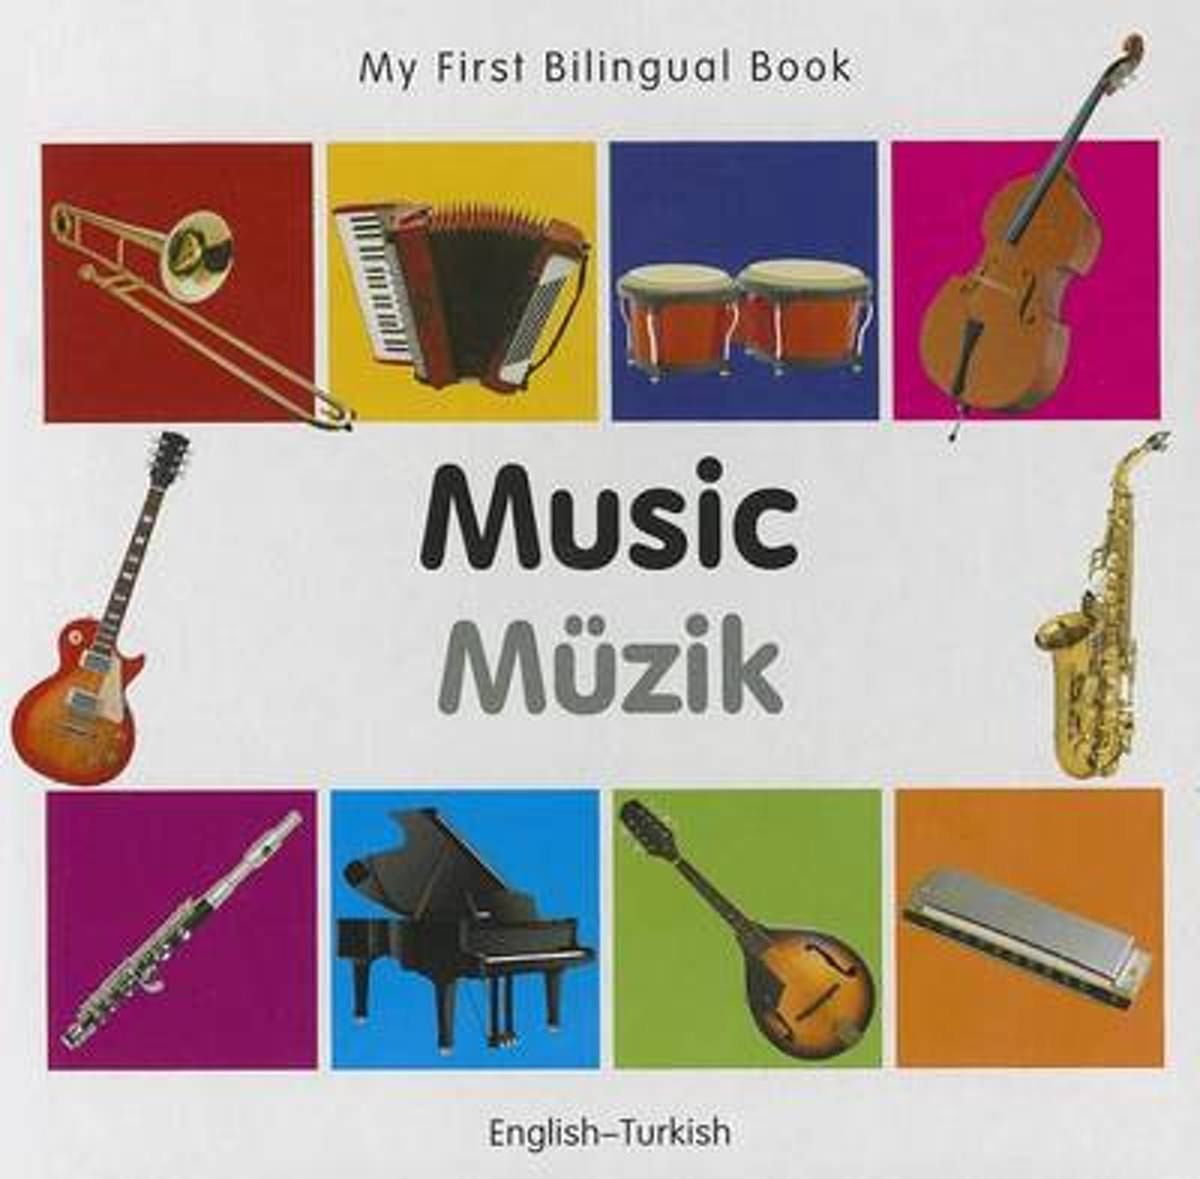 My First Bilingual Book - Music